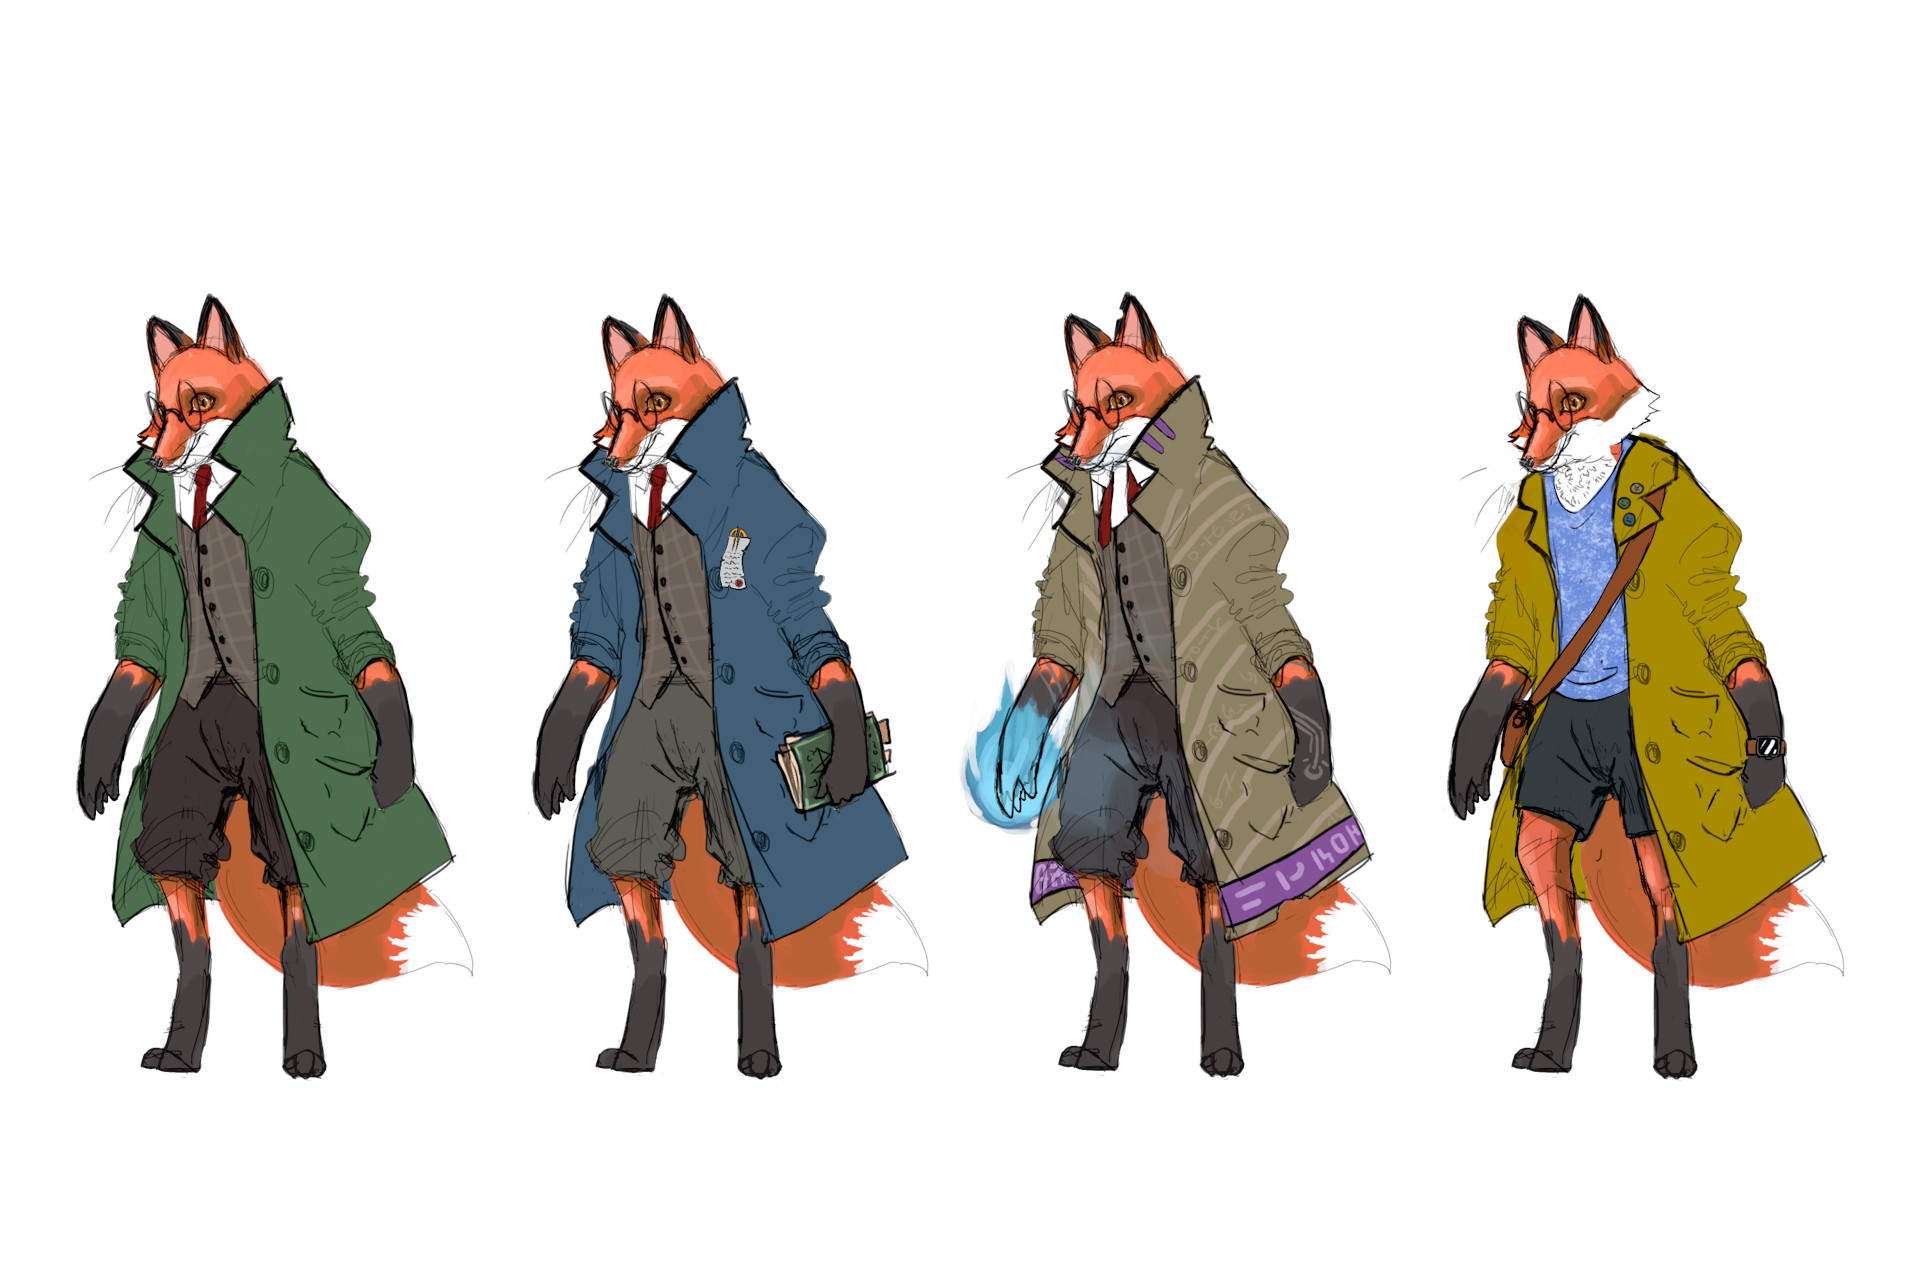 Since this was to be a quick concept for a character, I didn't spend too much time rendering it all out. 